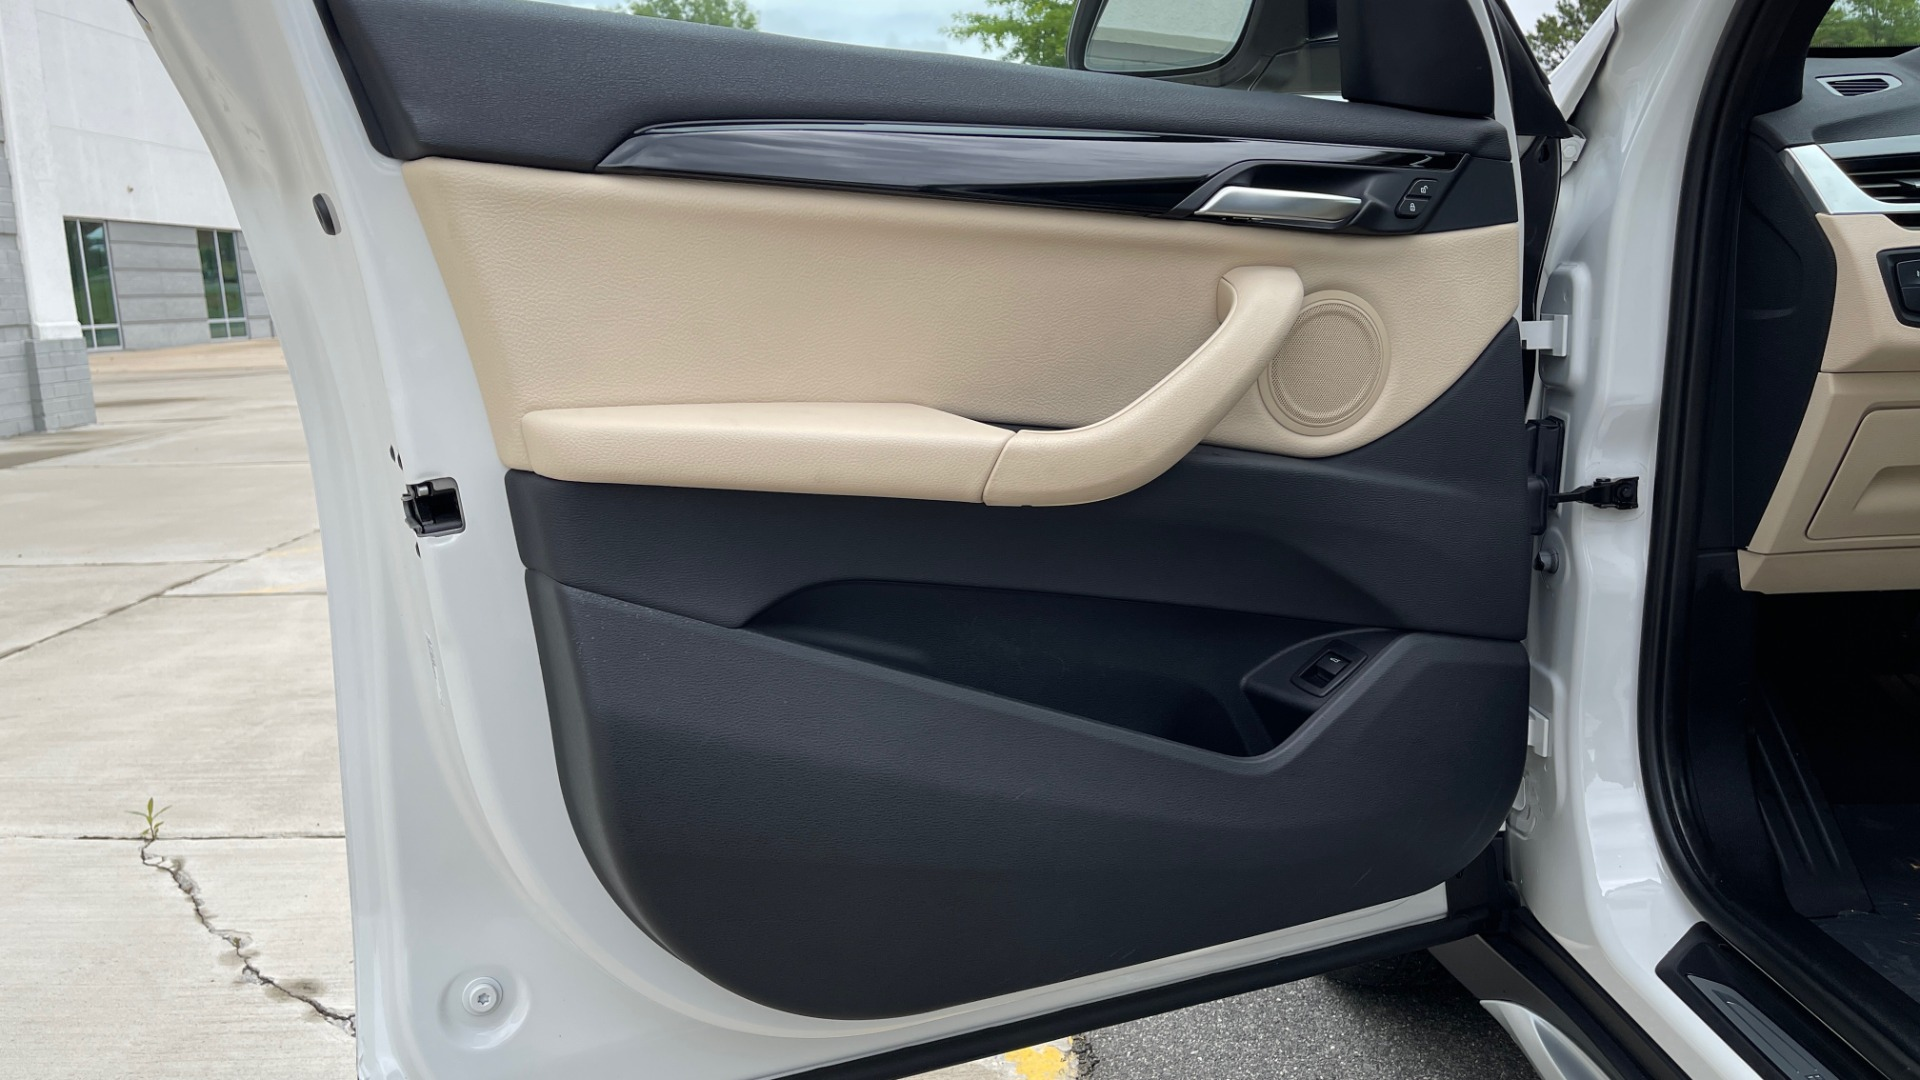 Used 2018 BMW X1 XDRIVE28I / CONV PKG / PANO-ROOF / HTD STS / PARK ASST / REARVIEW for sale $30,995 at Formula Imports in Charlotte NC 28227 33